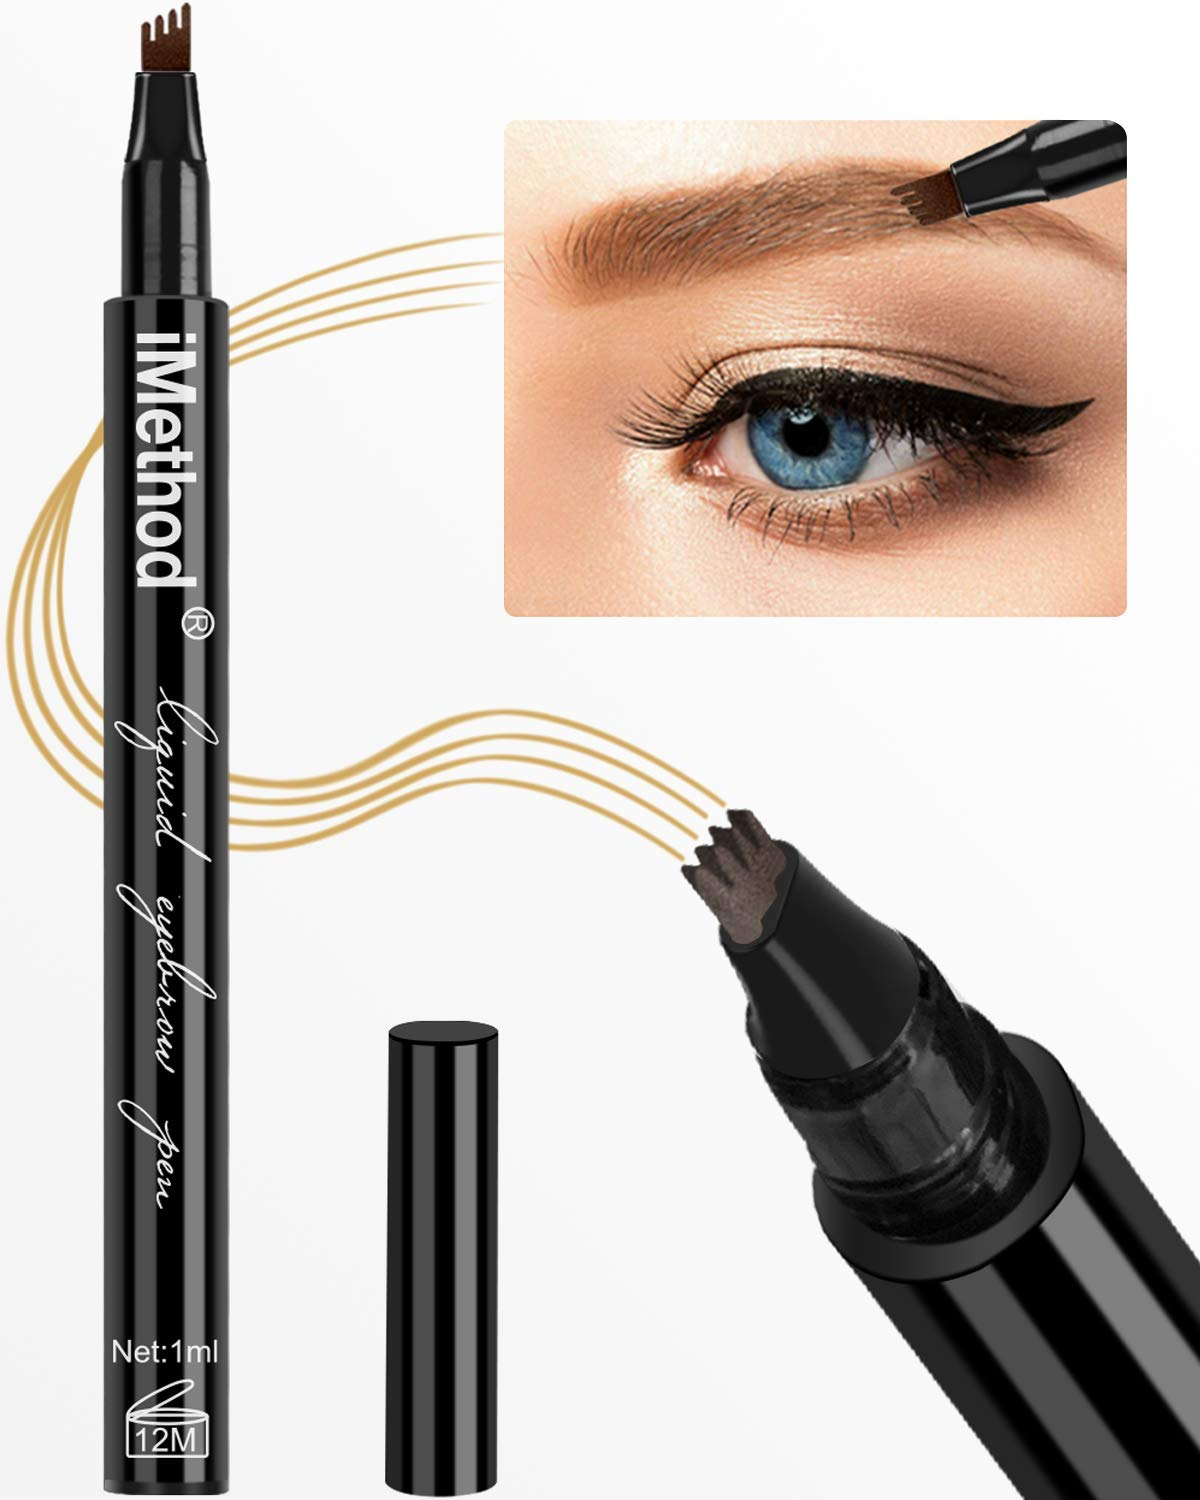 Eyebrow Tattoo Pen - iMethod Microblading Eyebrow Pencil with a Micro-Fork  Tip Applicator Creates Natural Looking Brows Effortlessly and Stays on All